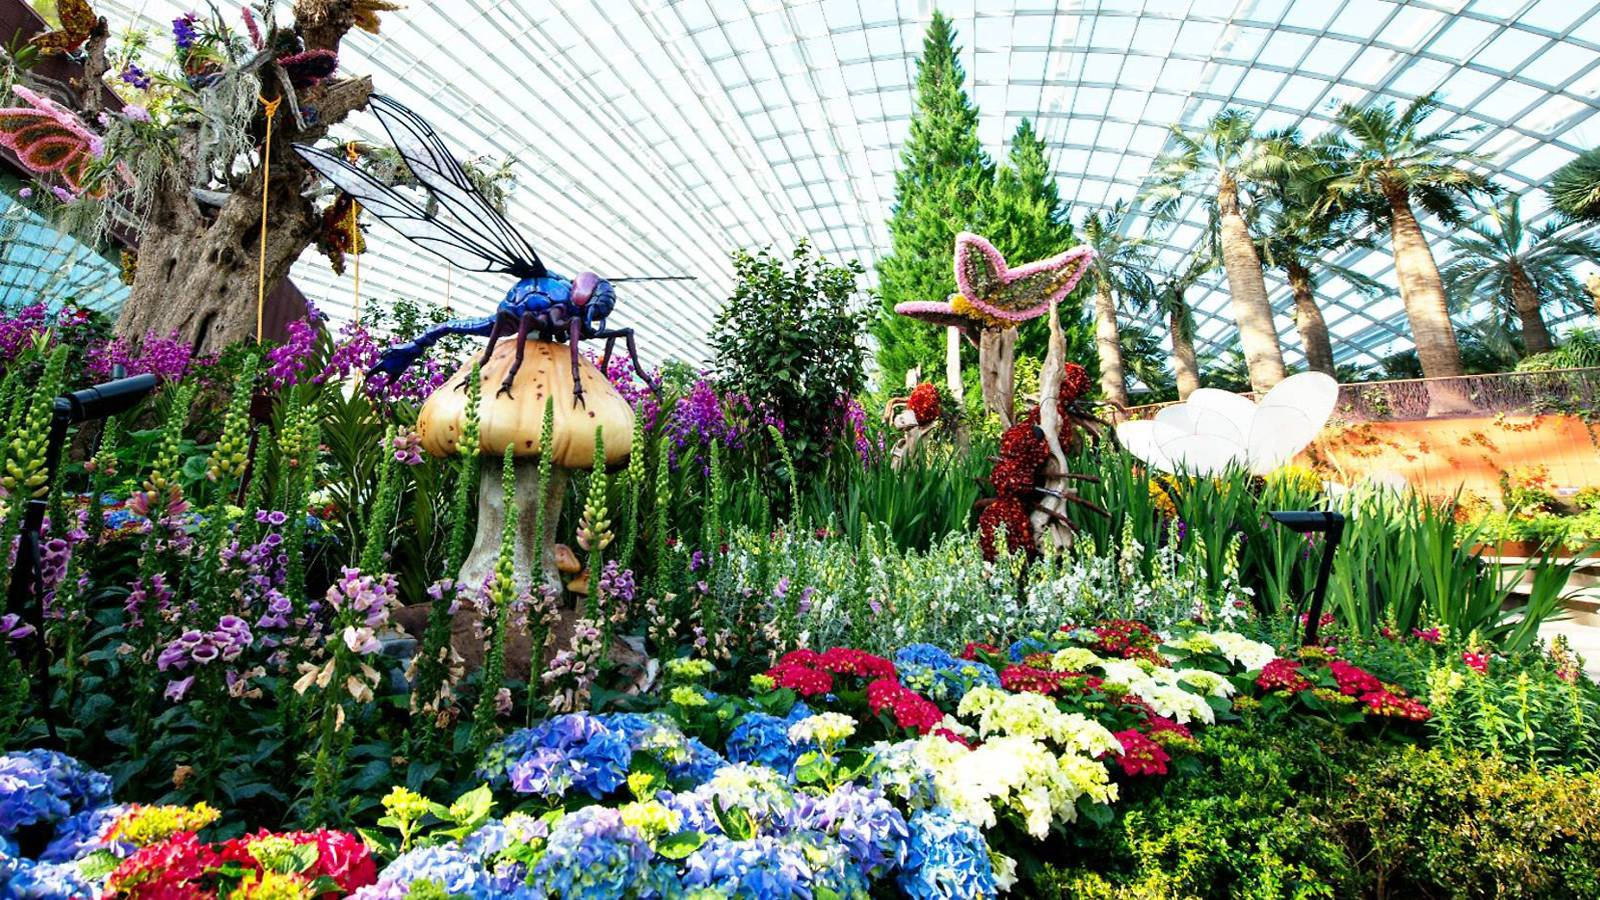 Tots--5-awesome-outdoor-experiences-your-tot-will-enjoy-gardensbythebay